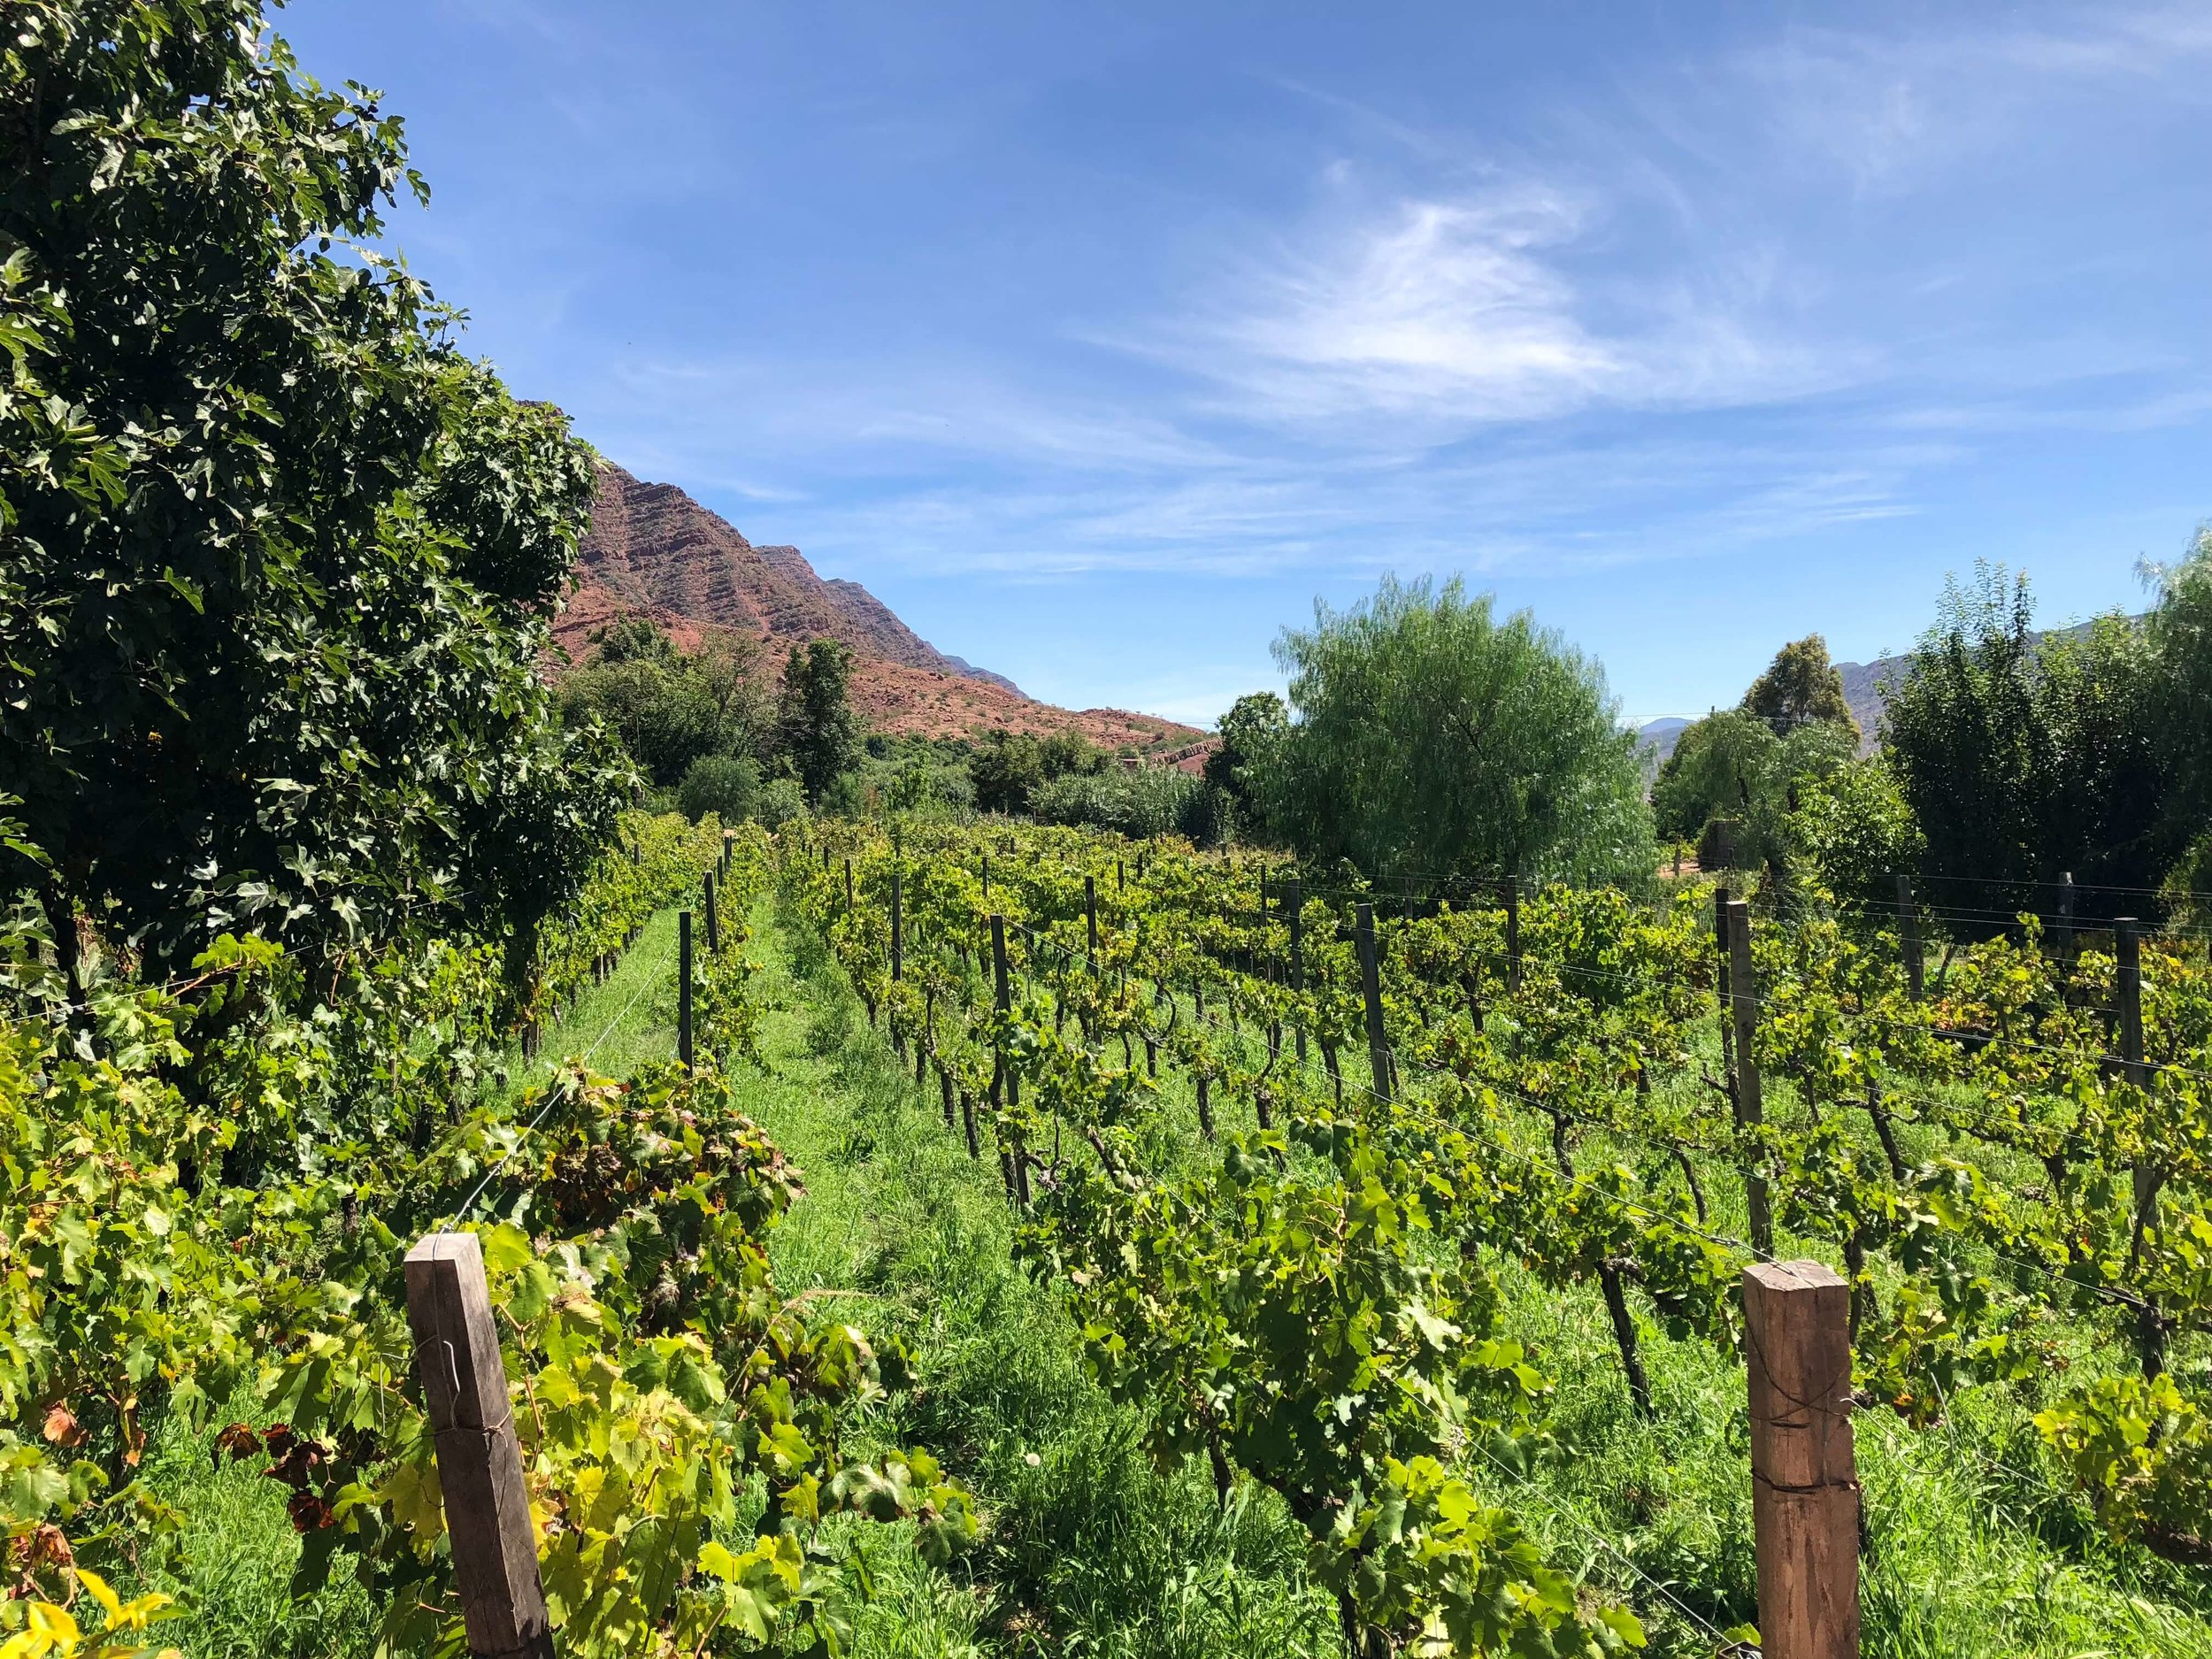 The vineyard at Bodega Cepas de Oro is located near the town of Villa Abecia in the Cinti Valley at an elevation of  2,350 meters (7,700ft). At this height the sun is filtered by less atmosphere leading to about 25% more UV exposure.